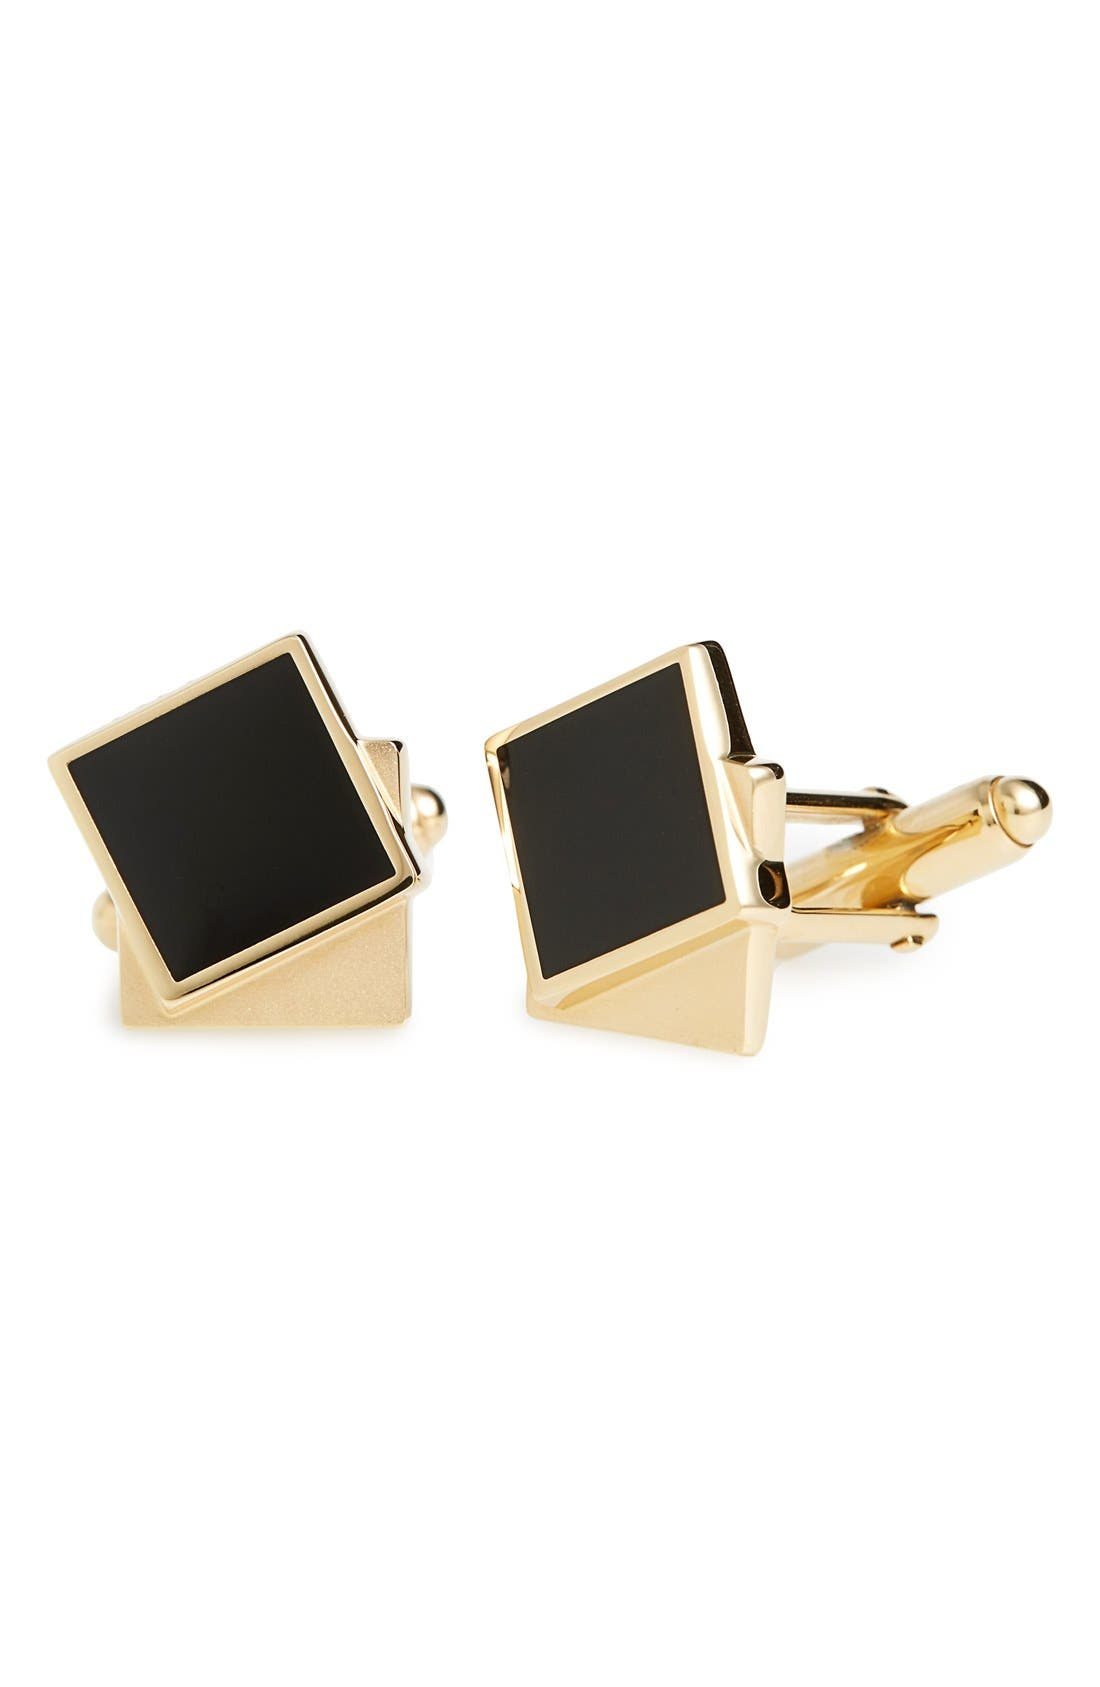 Enameled Double Square Cuff Links,                             Main thumbnail 1, color,                             710